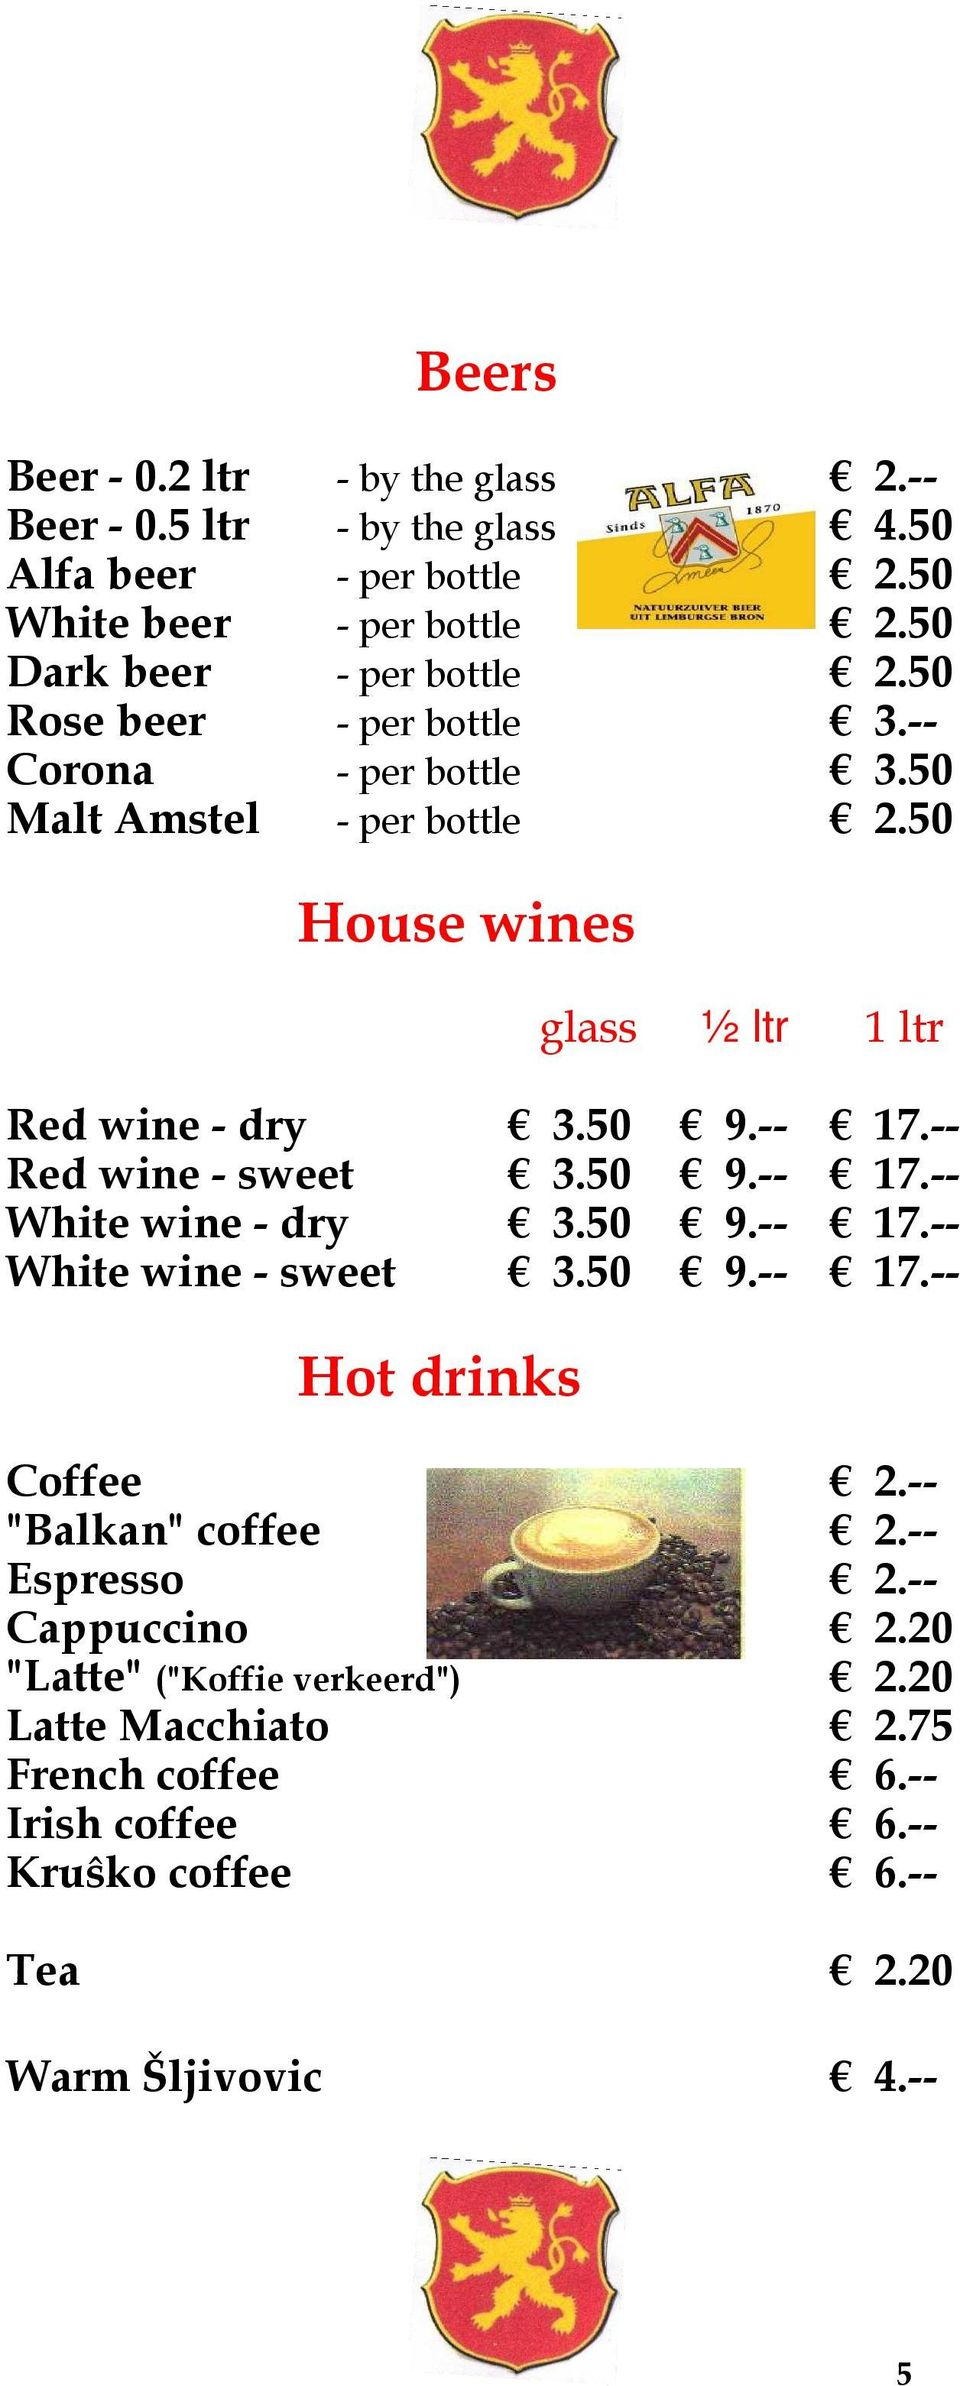 50 House wines glass ½ ltr 1 ltr Red wine - dry 3.50 9.-- 17.-- Red wine - sweet 3.50 9.-- 17.-- White wine - dry 3.50 9.-- 17.-- White wine - sweet 3.